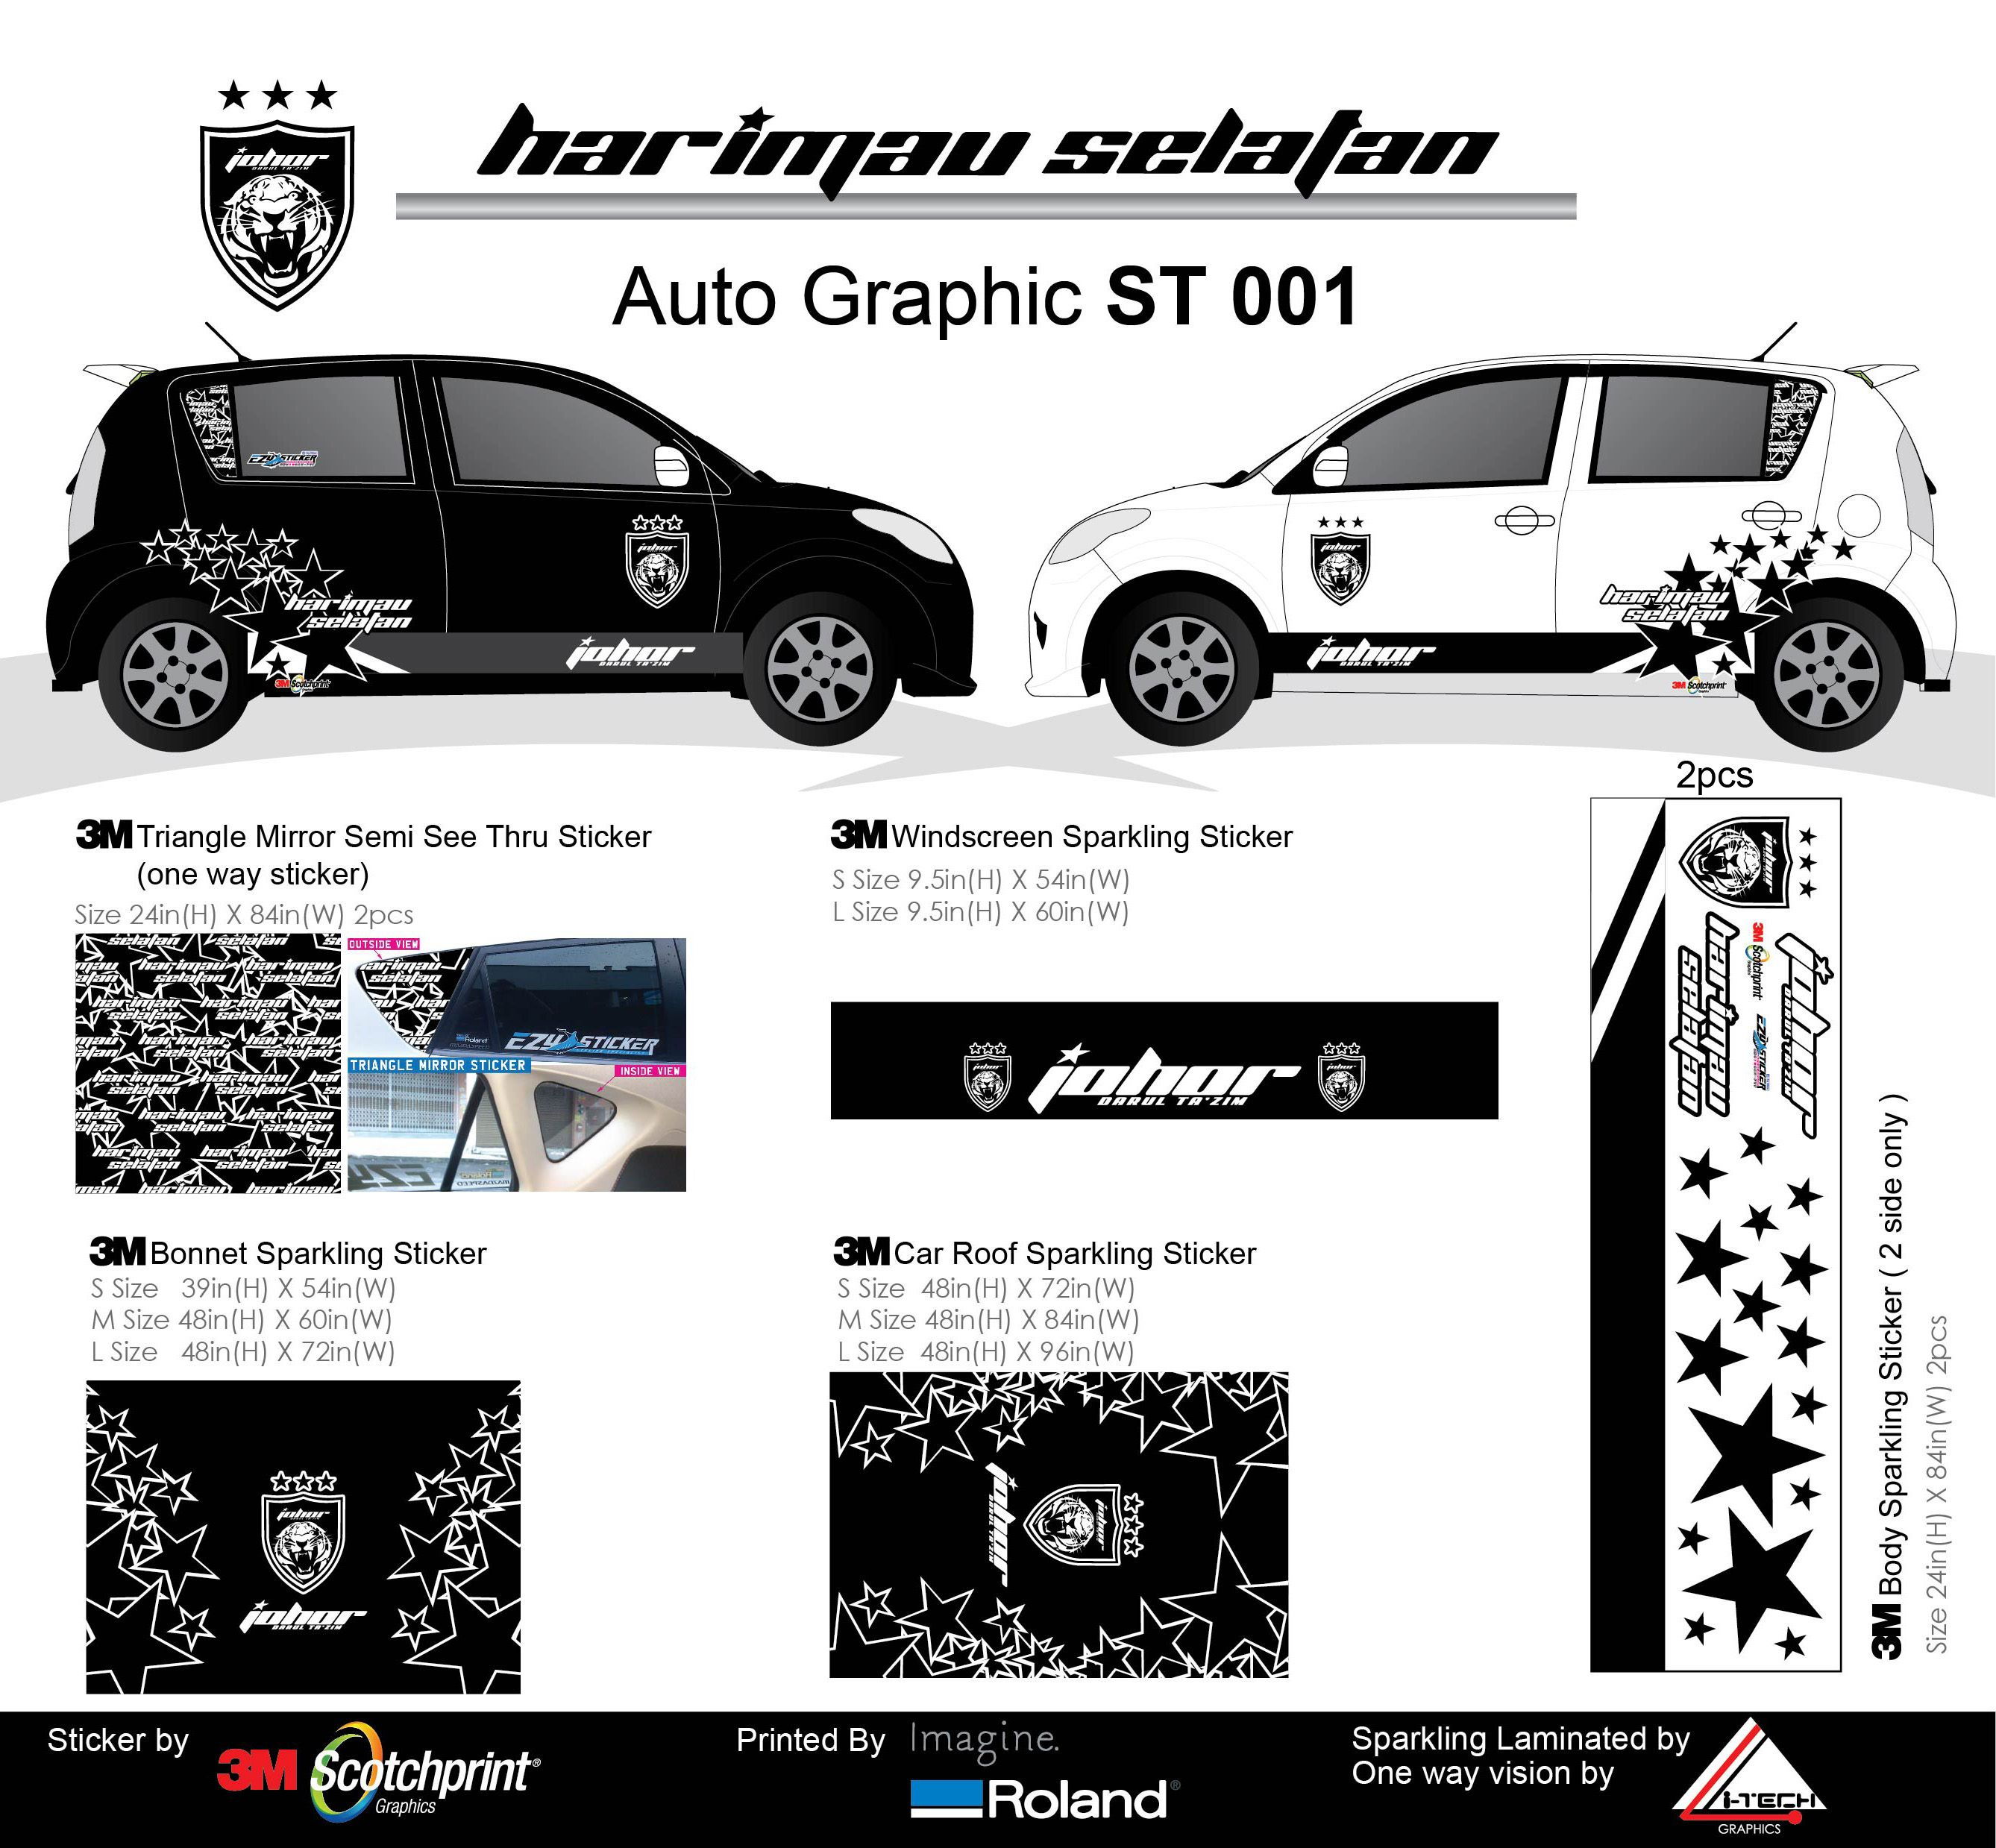 Car mirror sticker design - Produce In Removable 3m Sticker With Sparkling Effect Auto Graphics Harimau Selatan Aka Southern Tiger Front Bonnet Graphics Variable Sizes